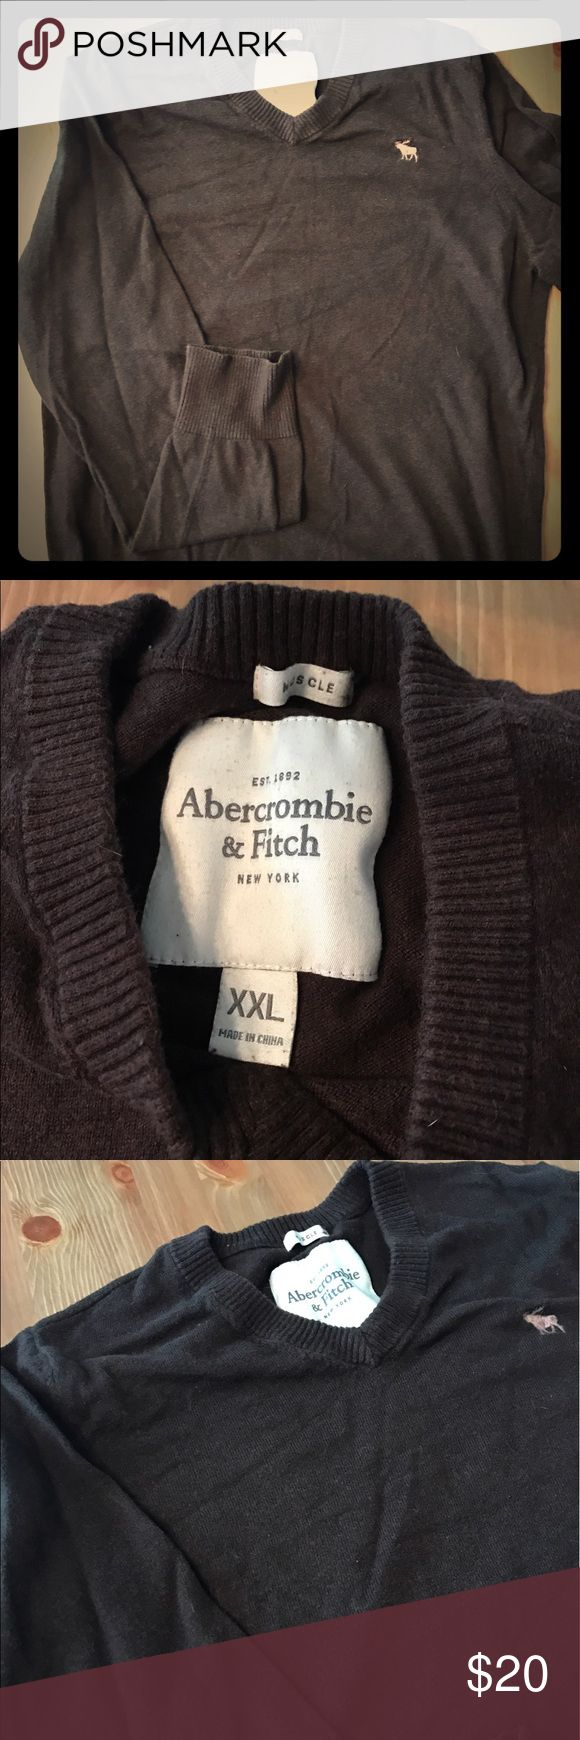 Abercrombie & Fitch Men's V Neck Sweater Chocolate brown mens Abercrombie and Fitch muscle fit v neck sweater. Lightly worn Abercrombie & Fitch Sweaters V-Neck